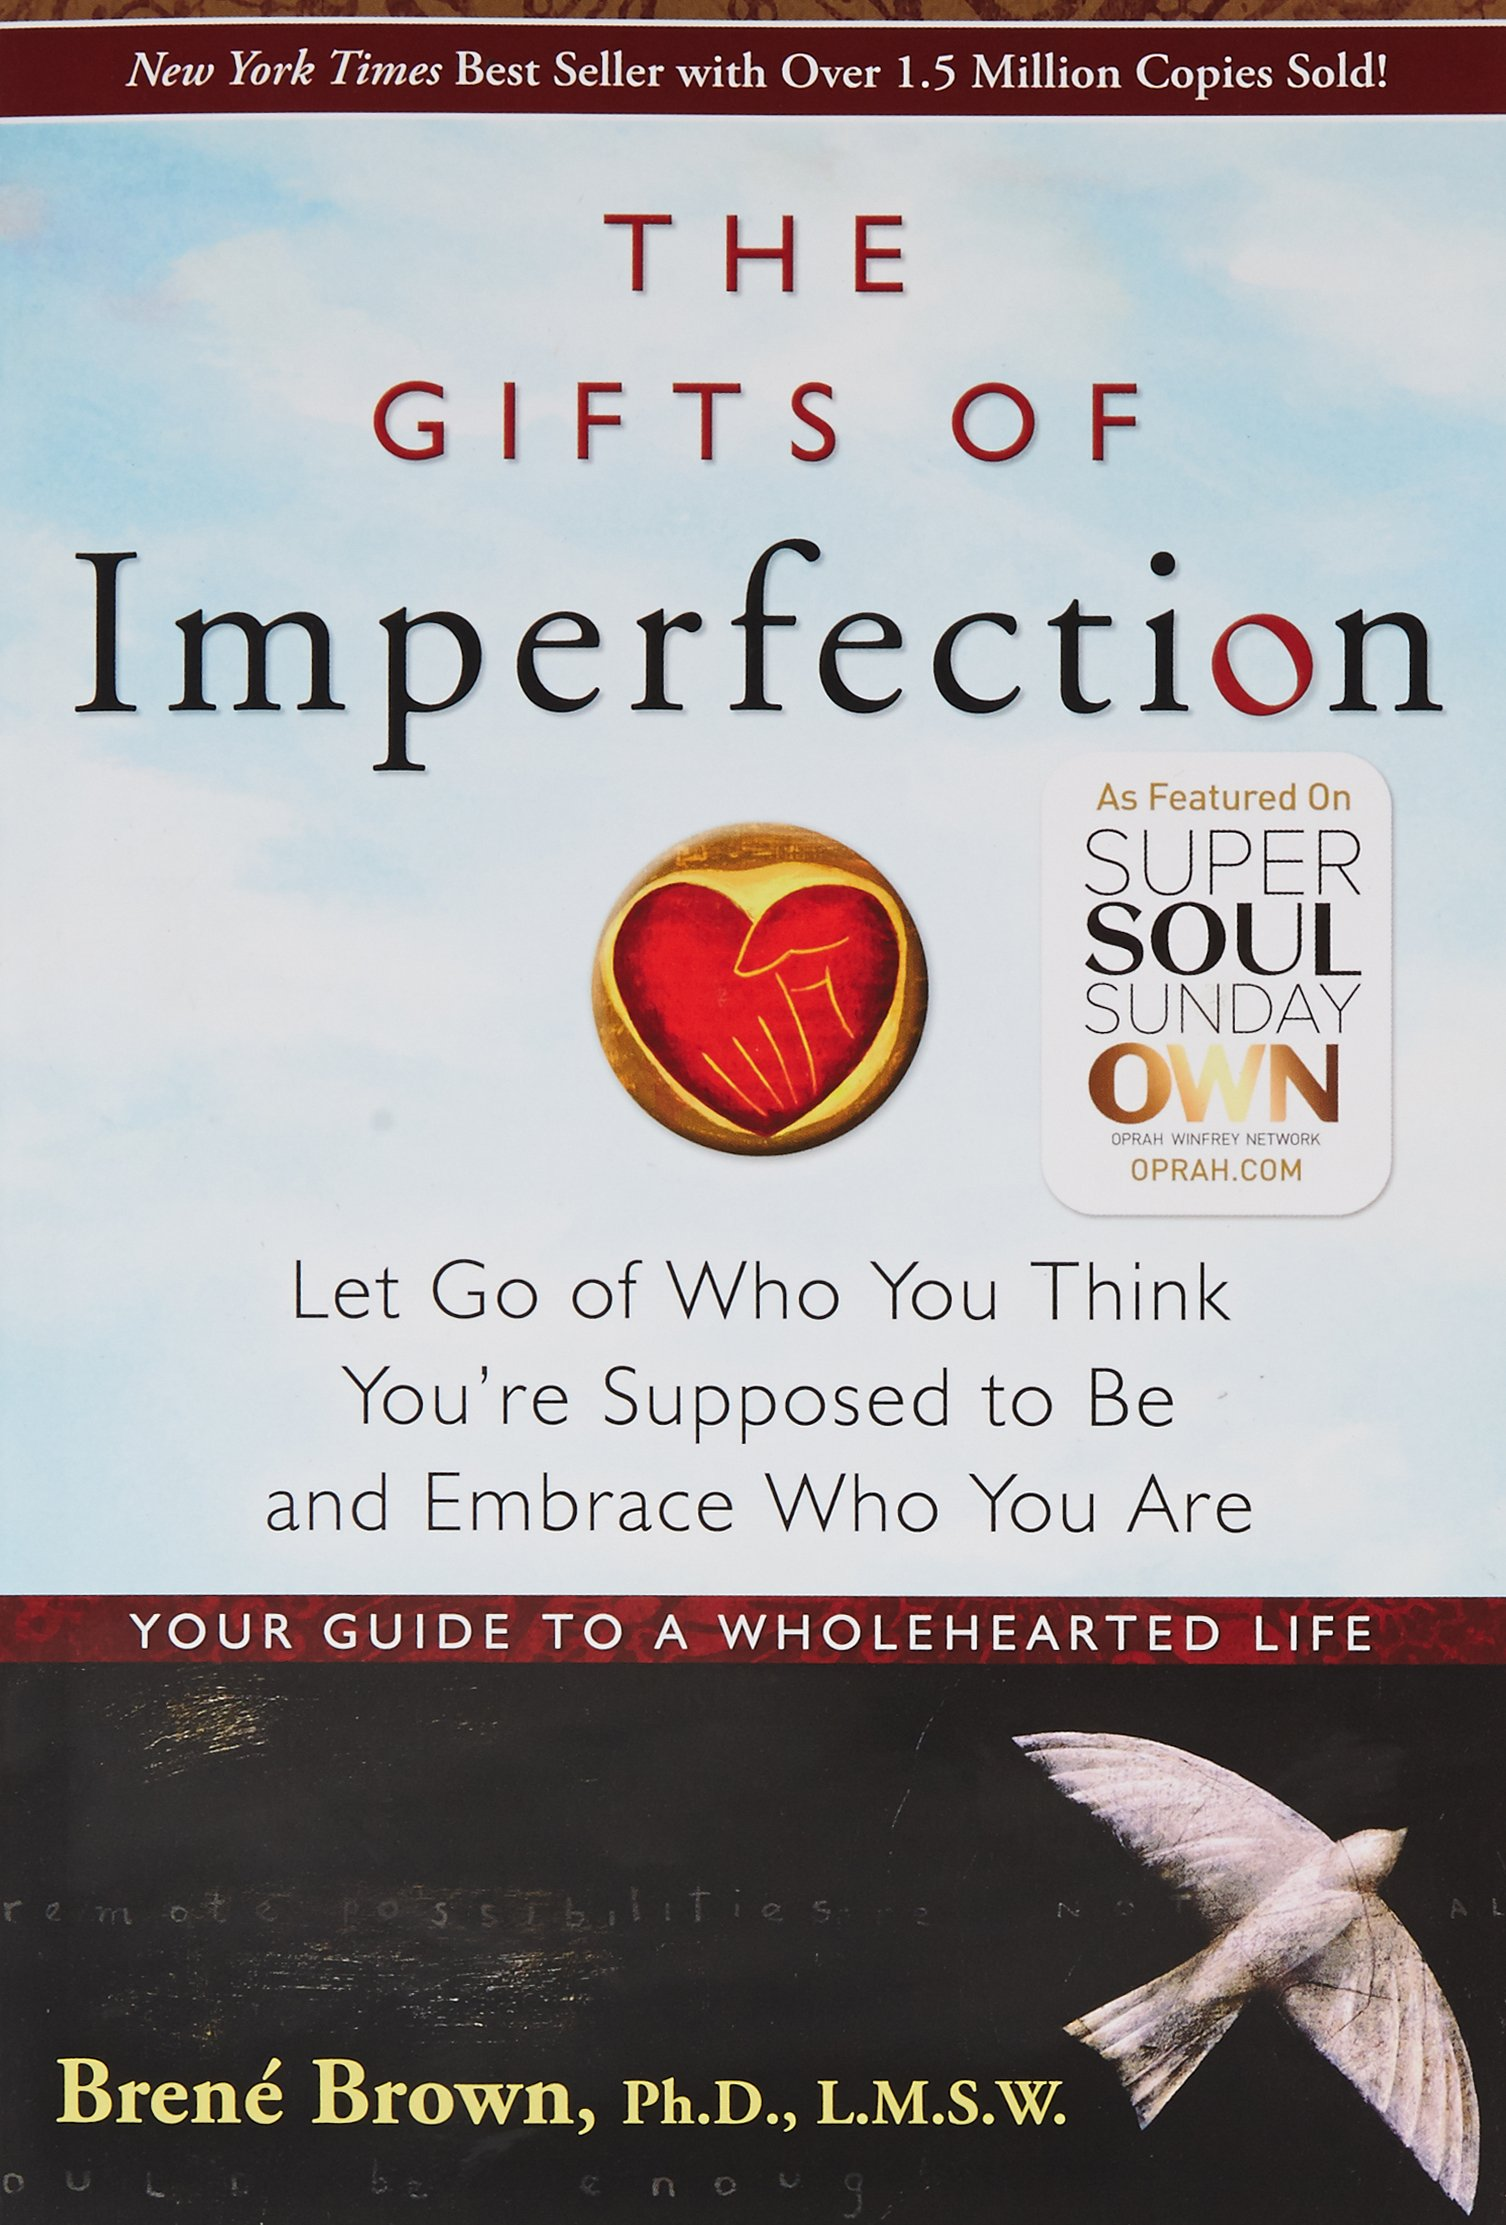 The gifts of imperfection let go of who you think you re supposed to be and embrace who you are 30 nov 2010 by bren brown